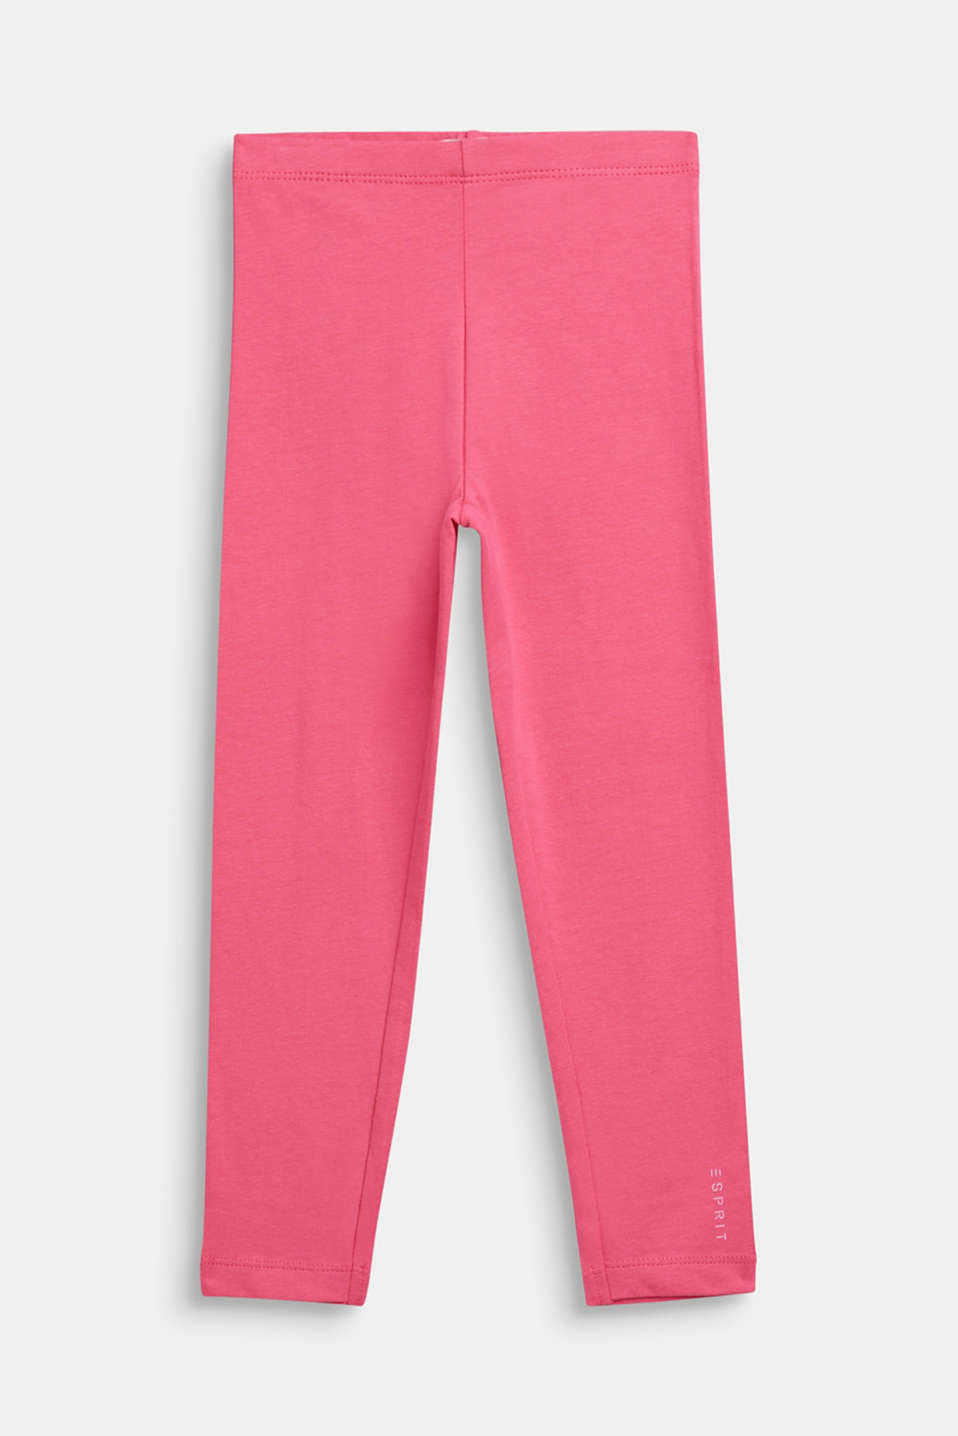 Esprit - Stretch cotton leggings